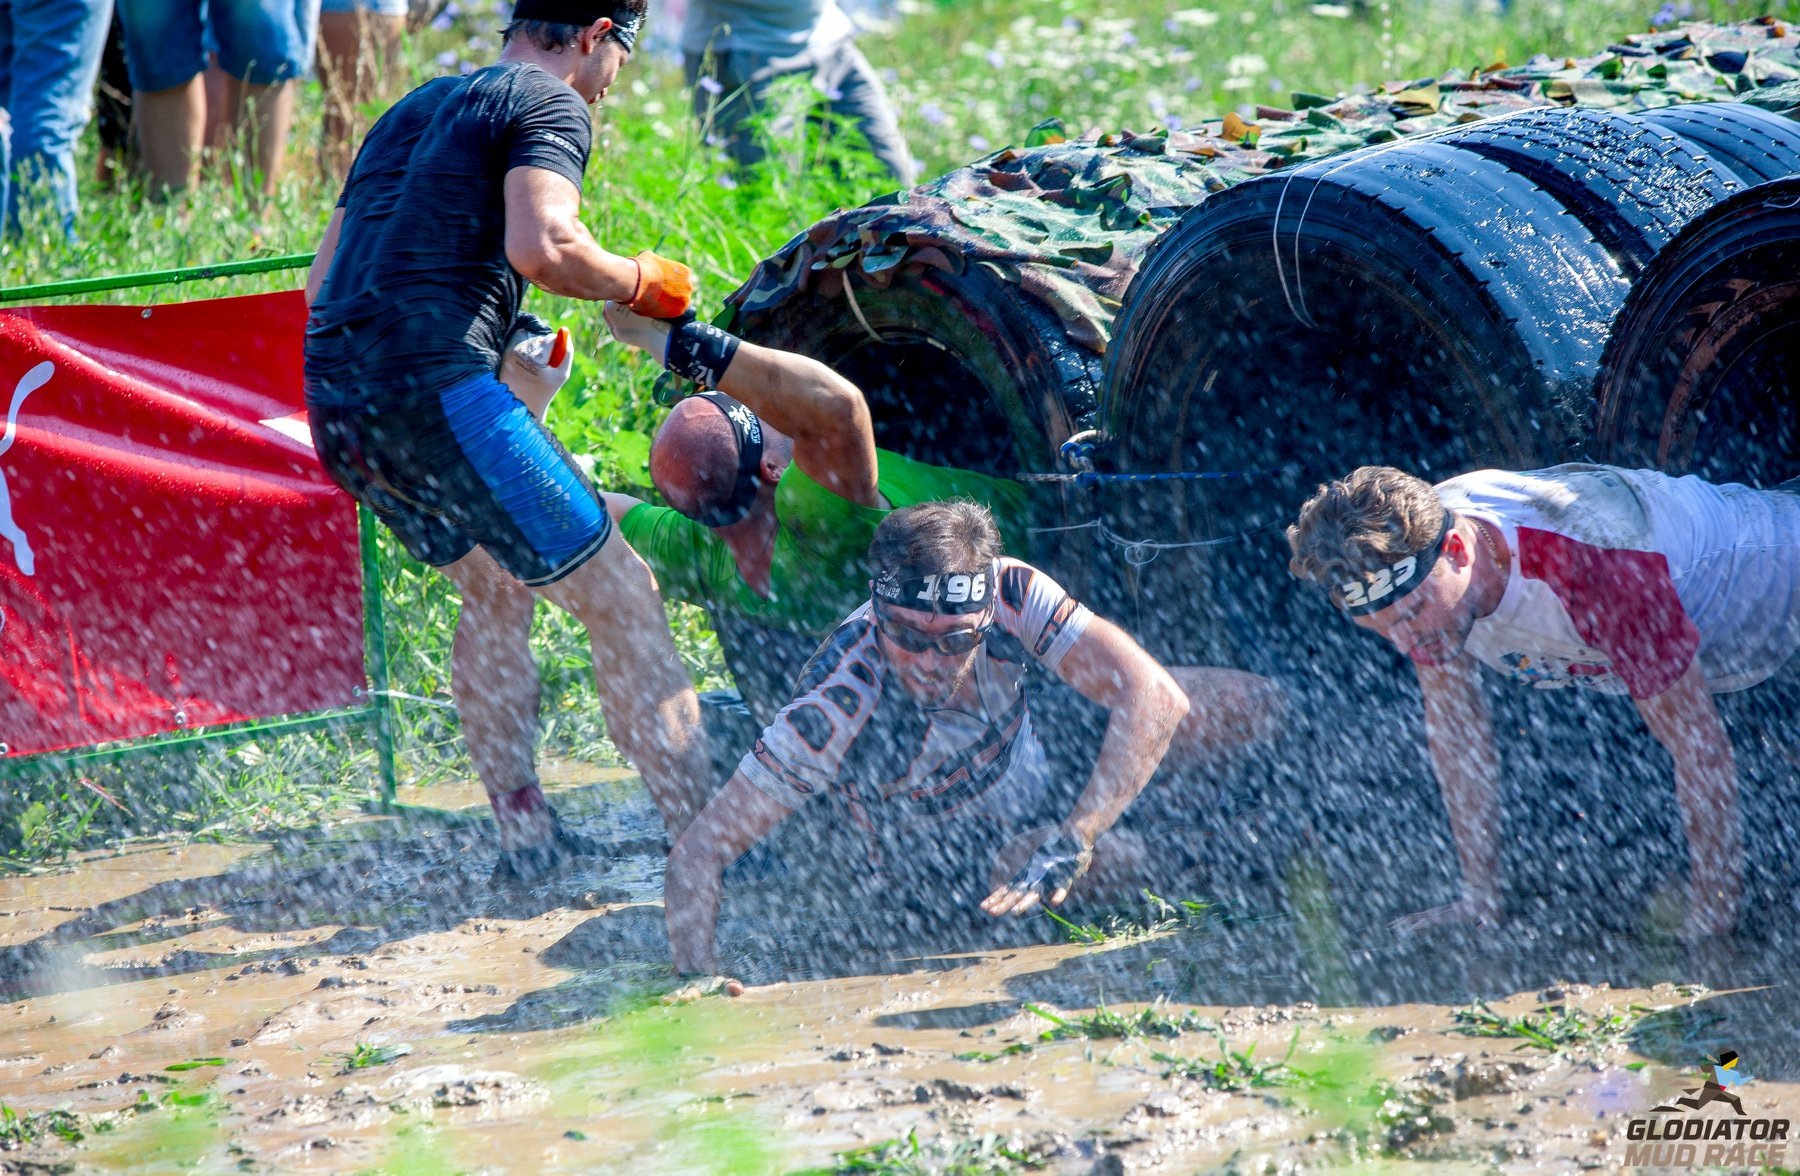 Mud run orgies speaking, opinion